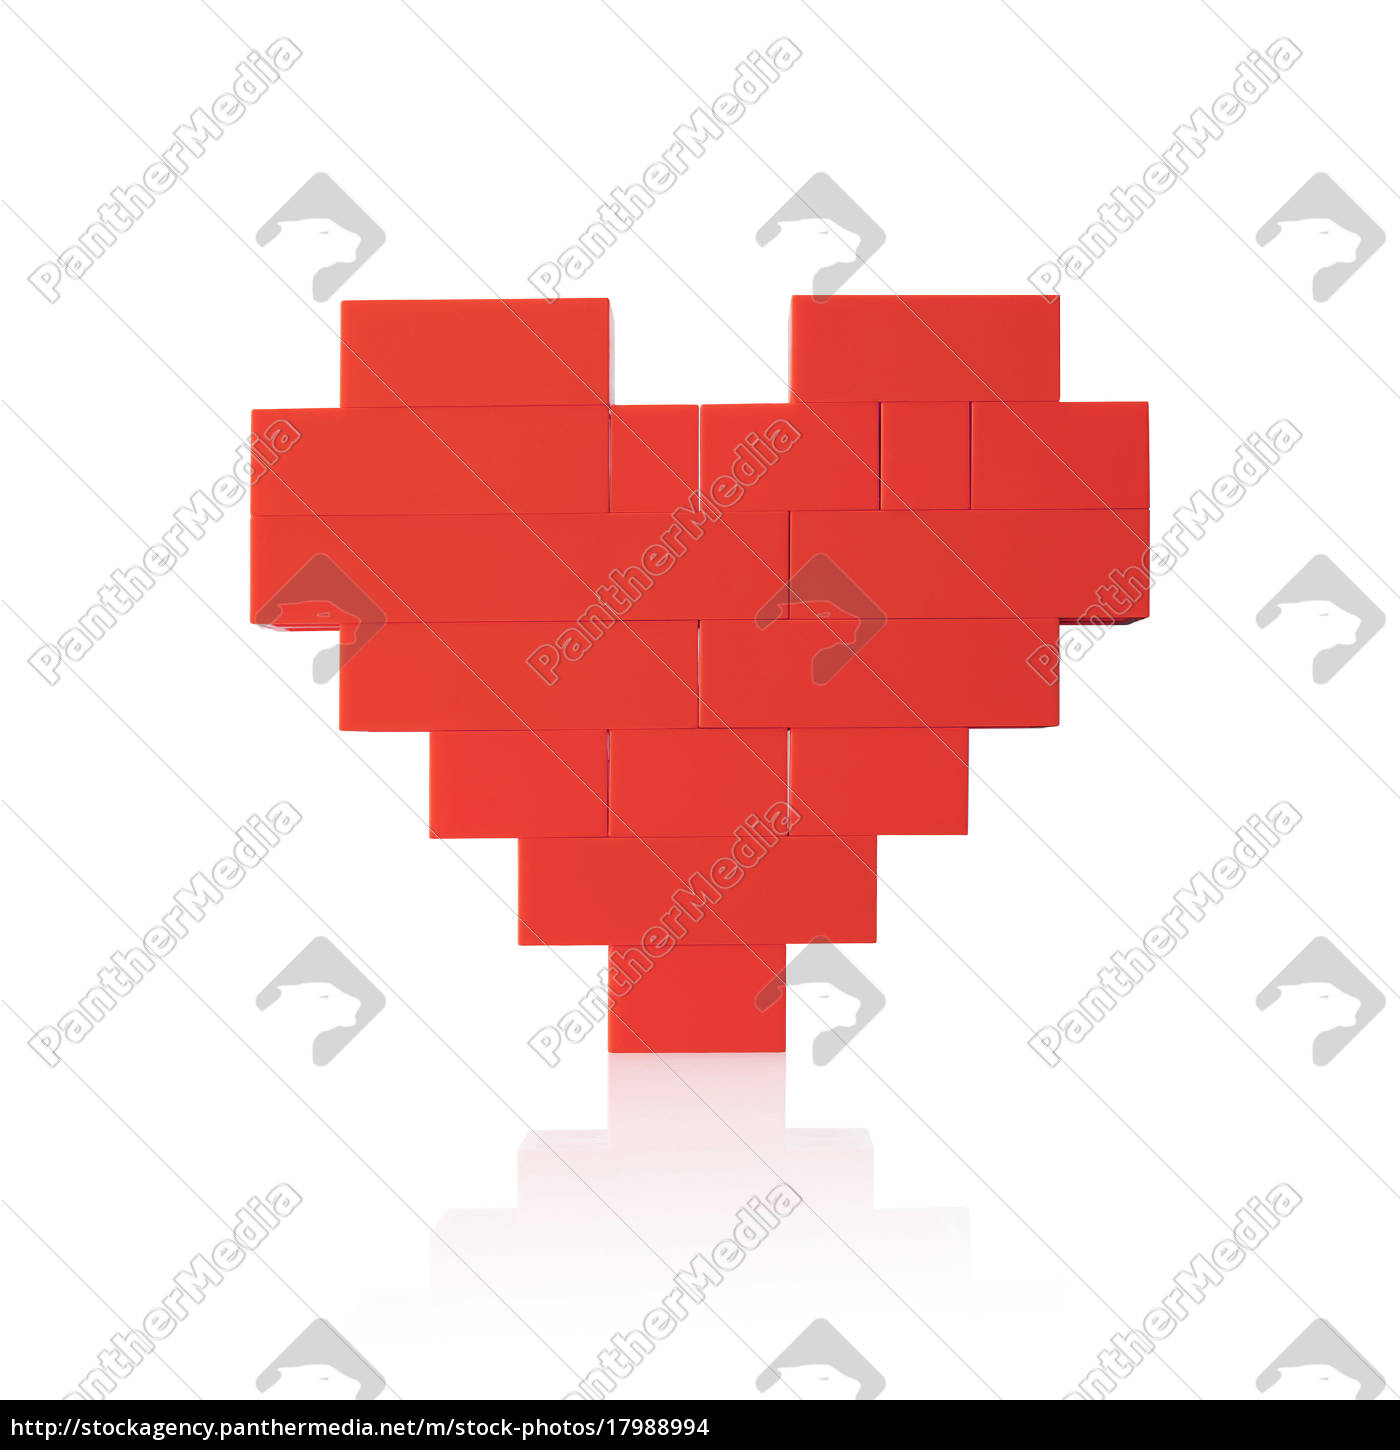 red, heart, on, white, background - 17988994